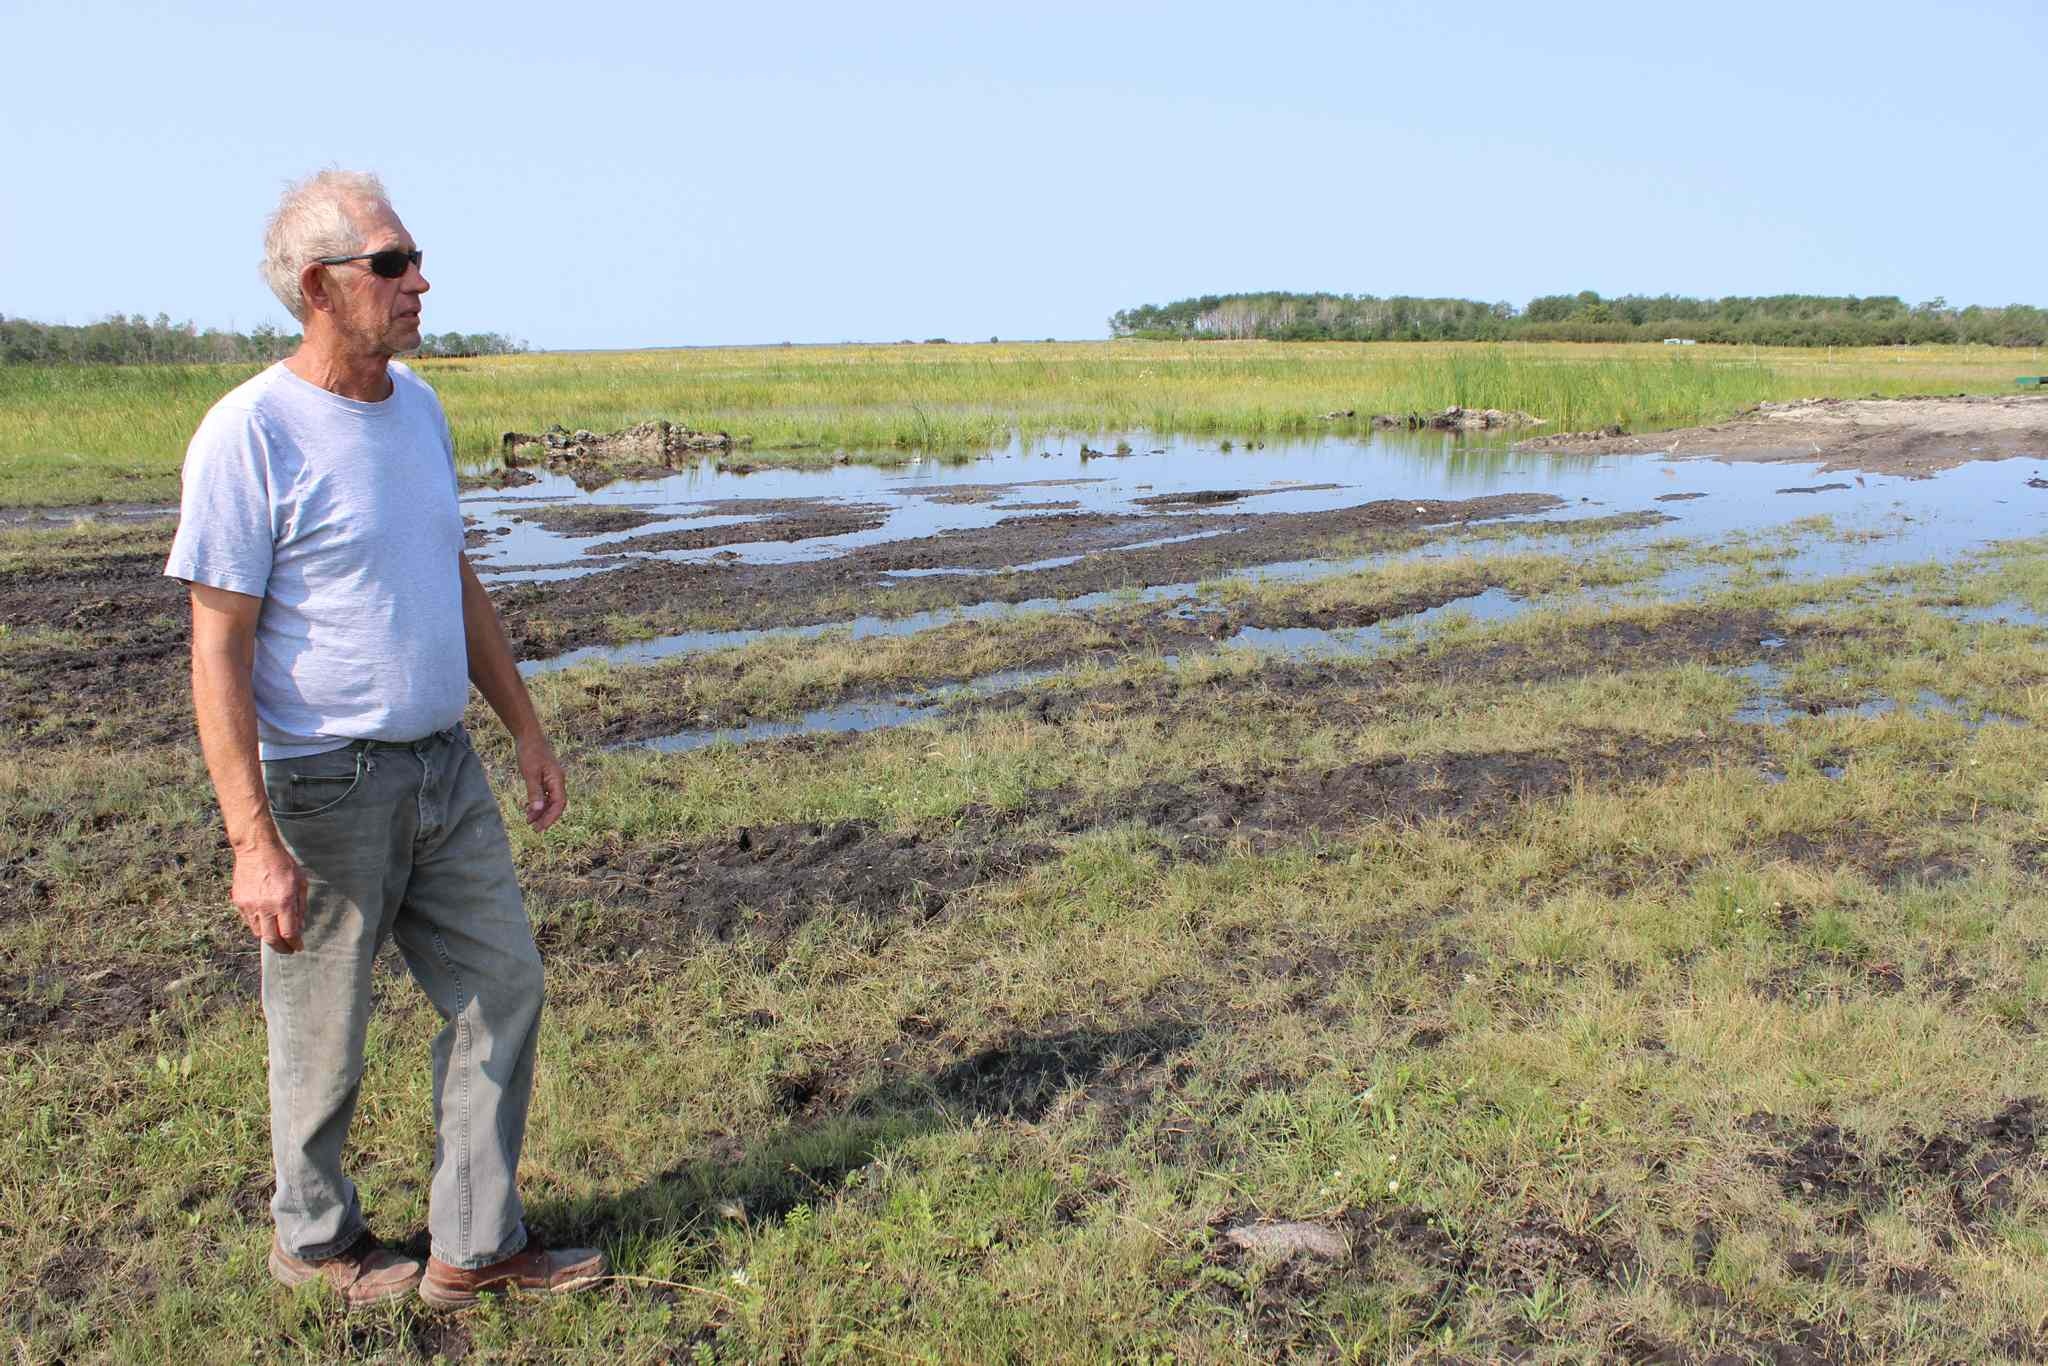 Eddystone farmer Bill Finney inspects his flooded fields. The Portage Diversion has raised water levels and caused problems for farms along Lake Manitoba again.